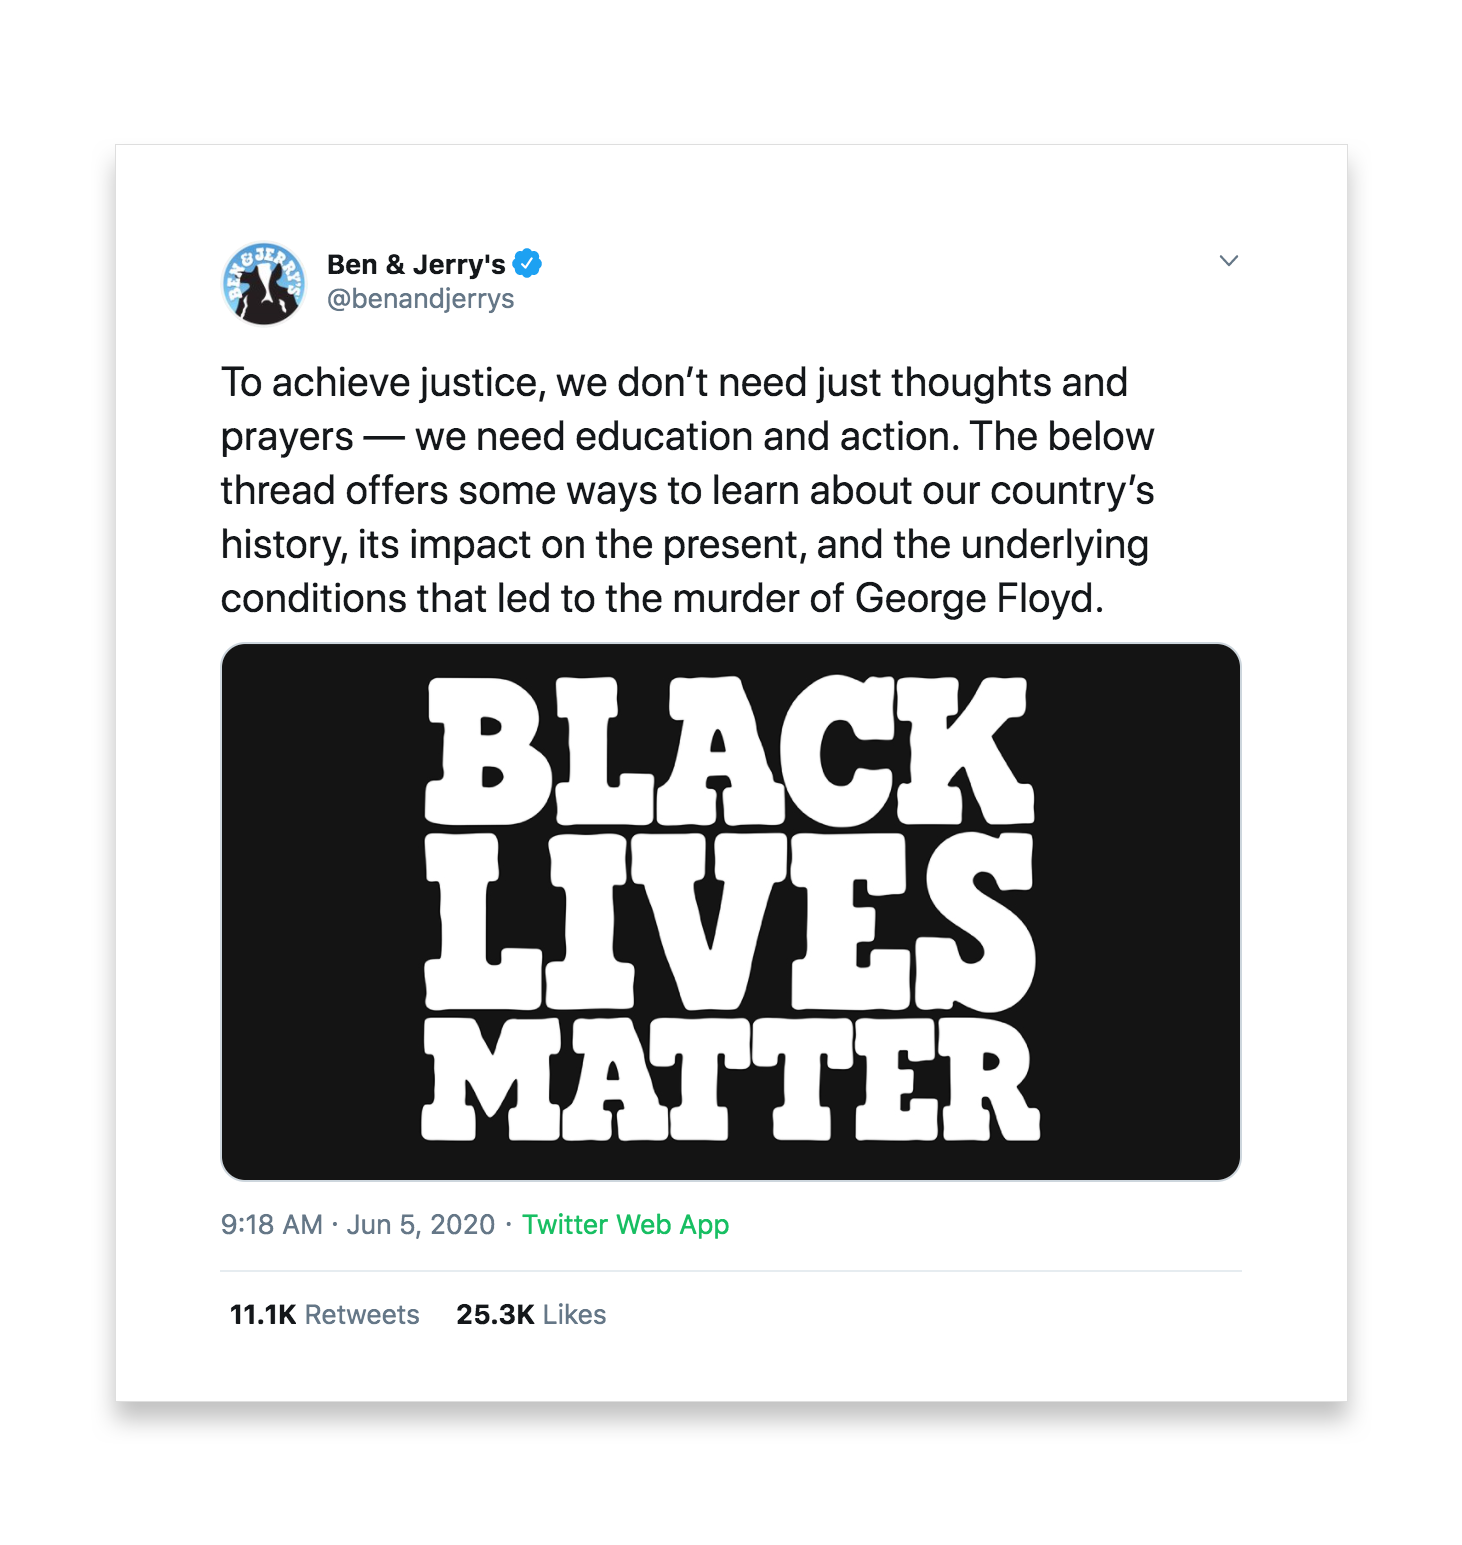 A tweet by Ben and Jerry's reads To achieve justice, we don't need just thoughts and prayers- we need education and action. The below thread offers some ways to learn about our country's history, its impact on the present, and the underlying conditions that led to the murder of George Floyd.